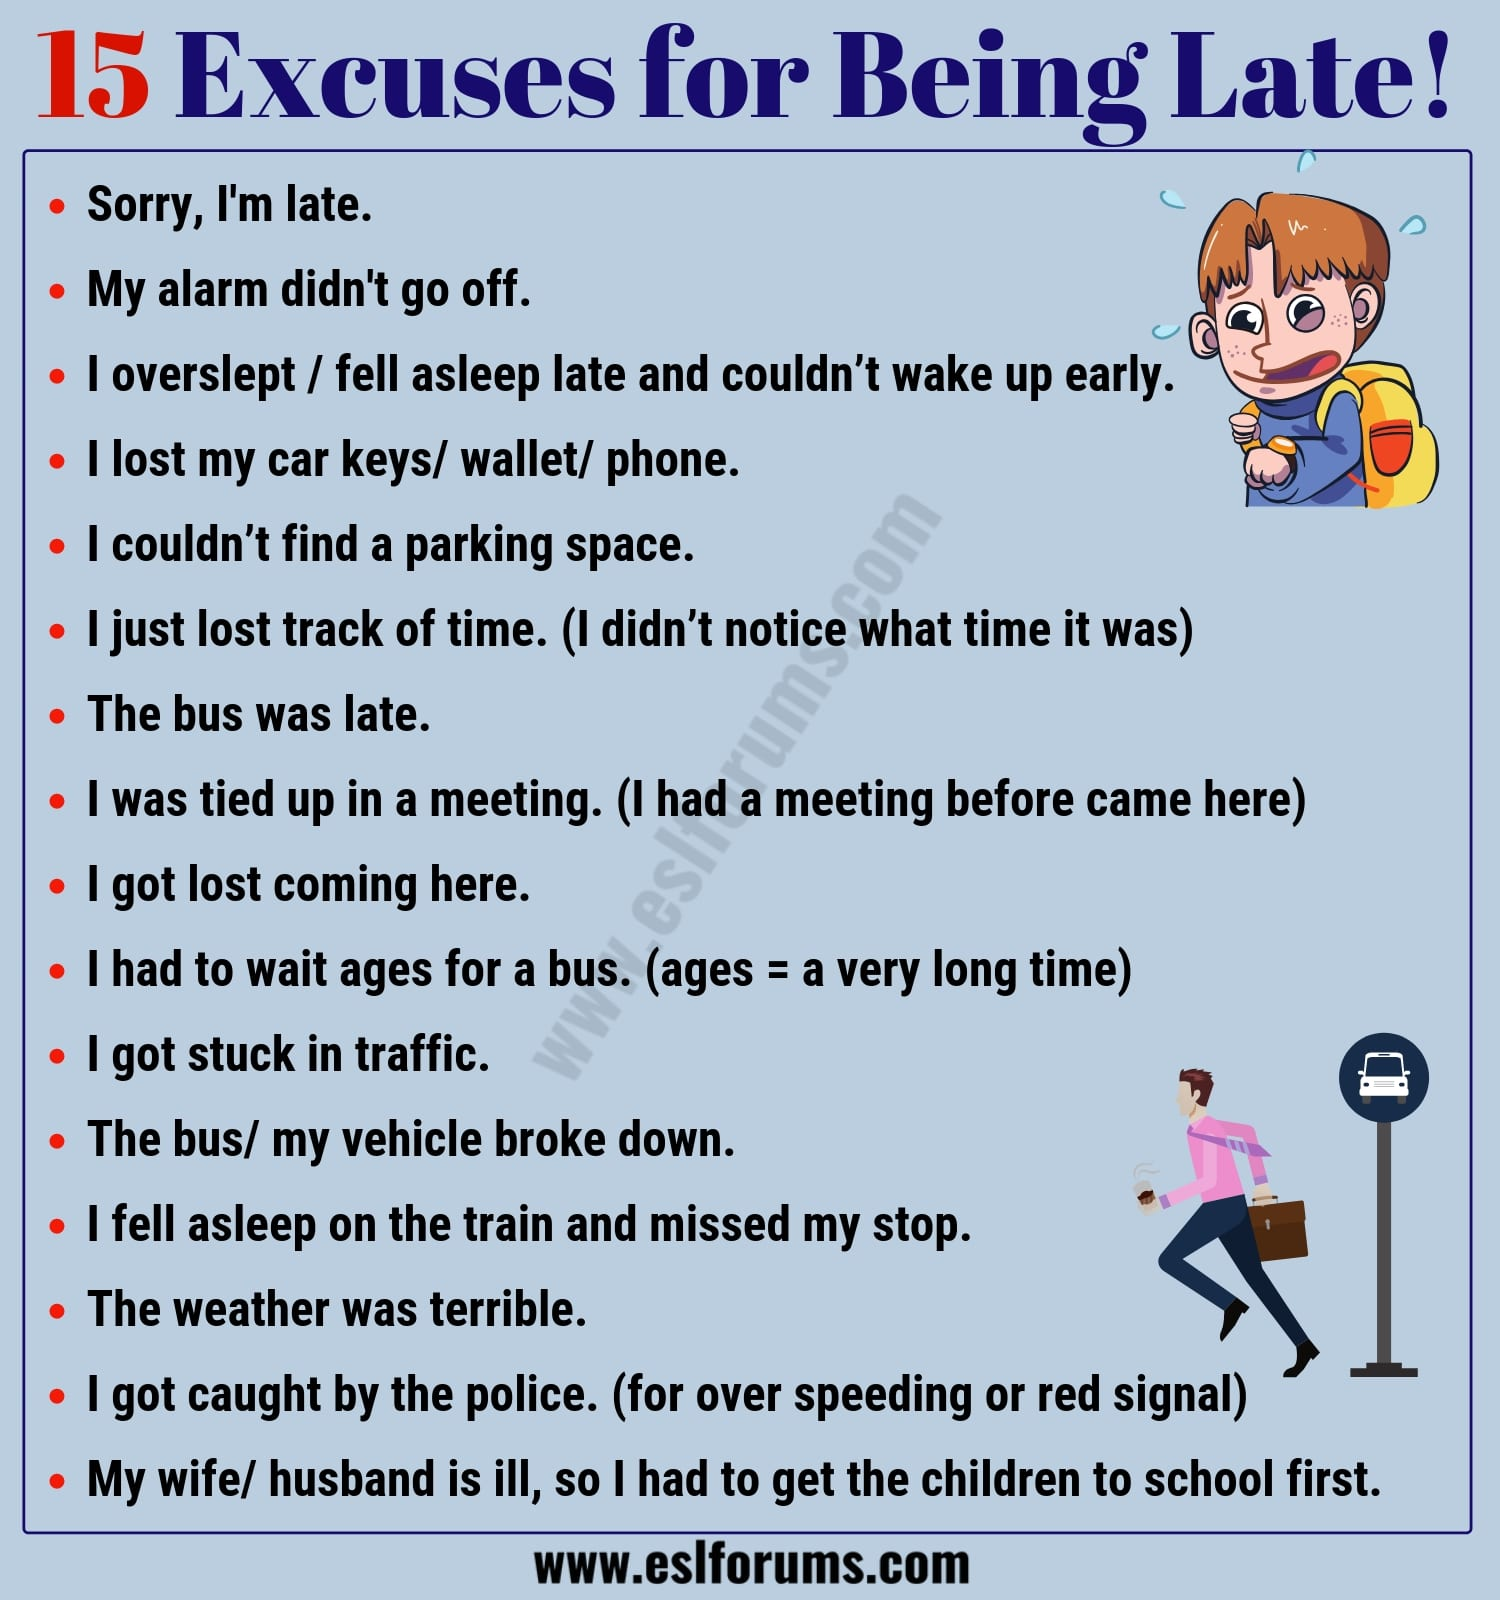 15 Best Excuses for Being Late You Might Need!